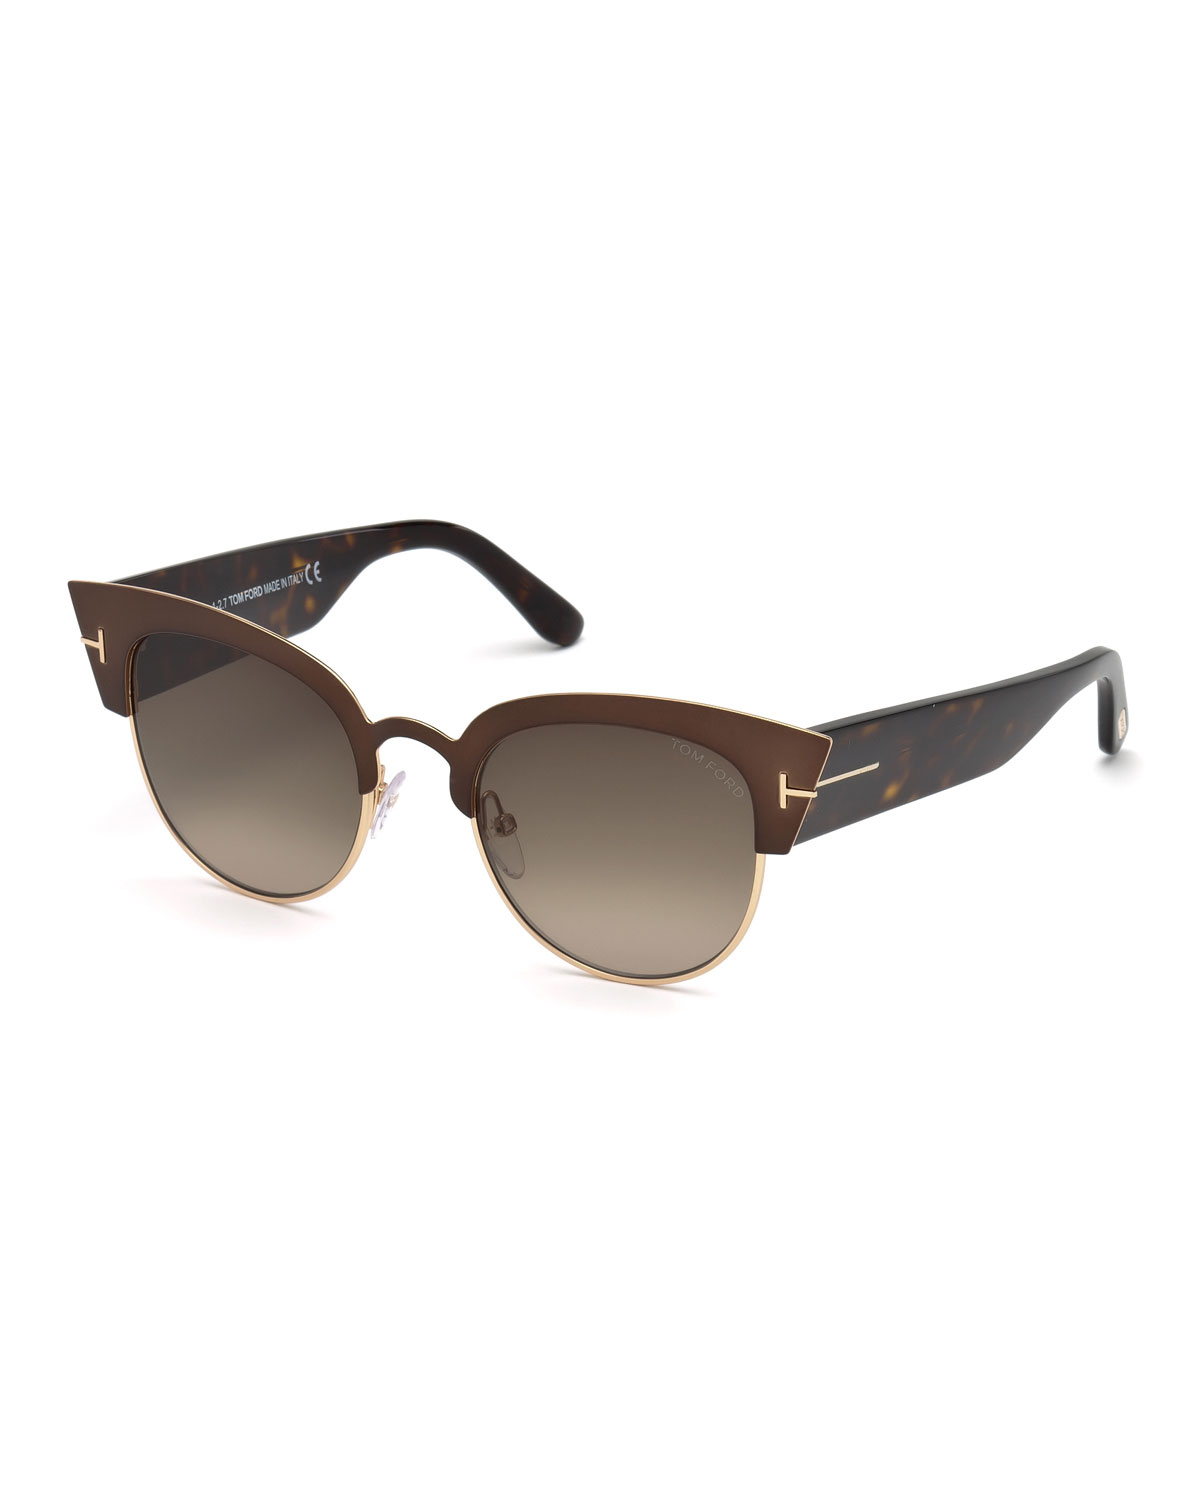 e8cd2471d7 TOM FORD Alexandra Semi-Rimless Cat Eye Sunglasses